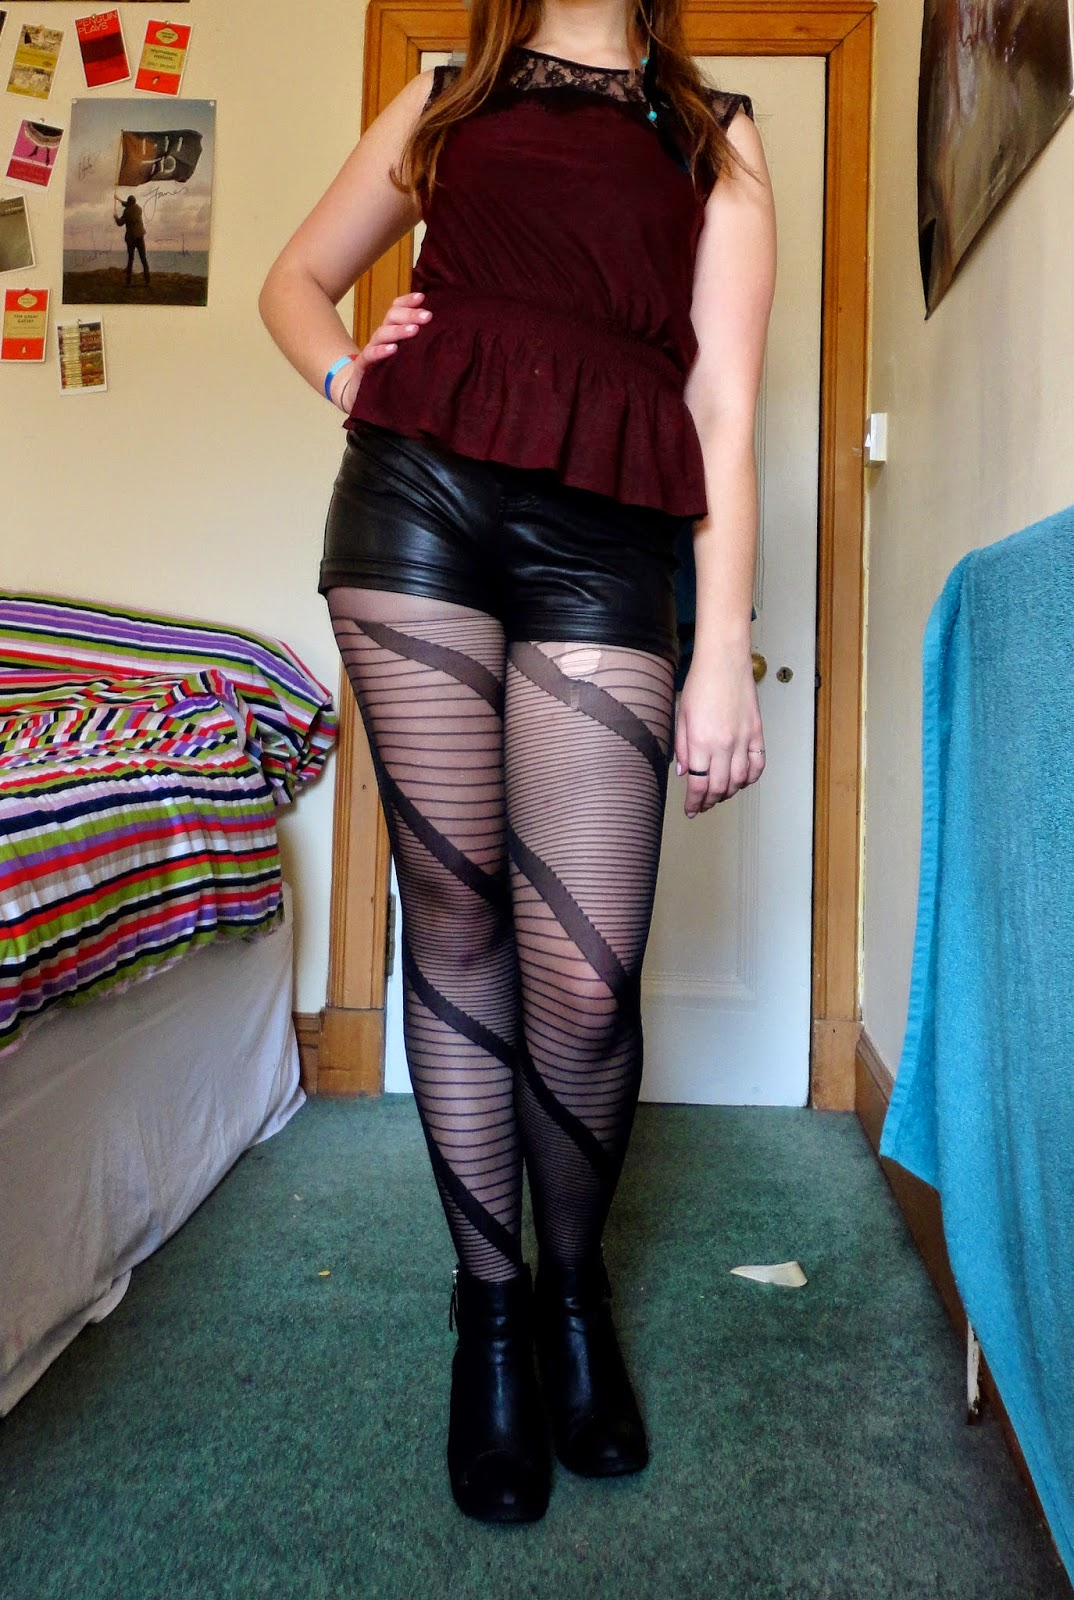 outfit of red peplum top with black lace, black fake leather shorts, striped tights and heeled ankle boots